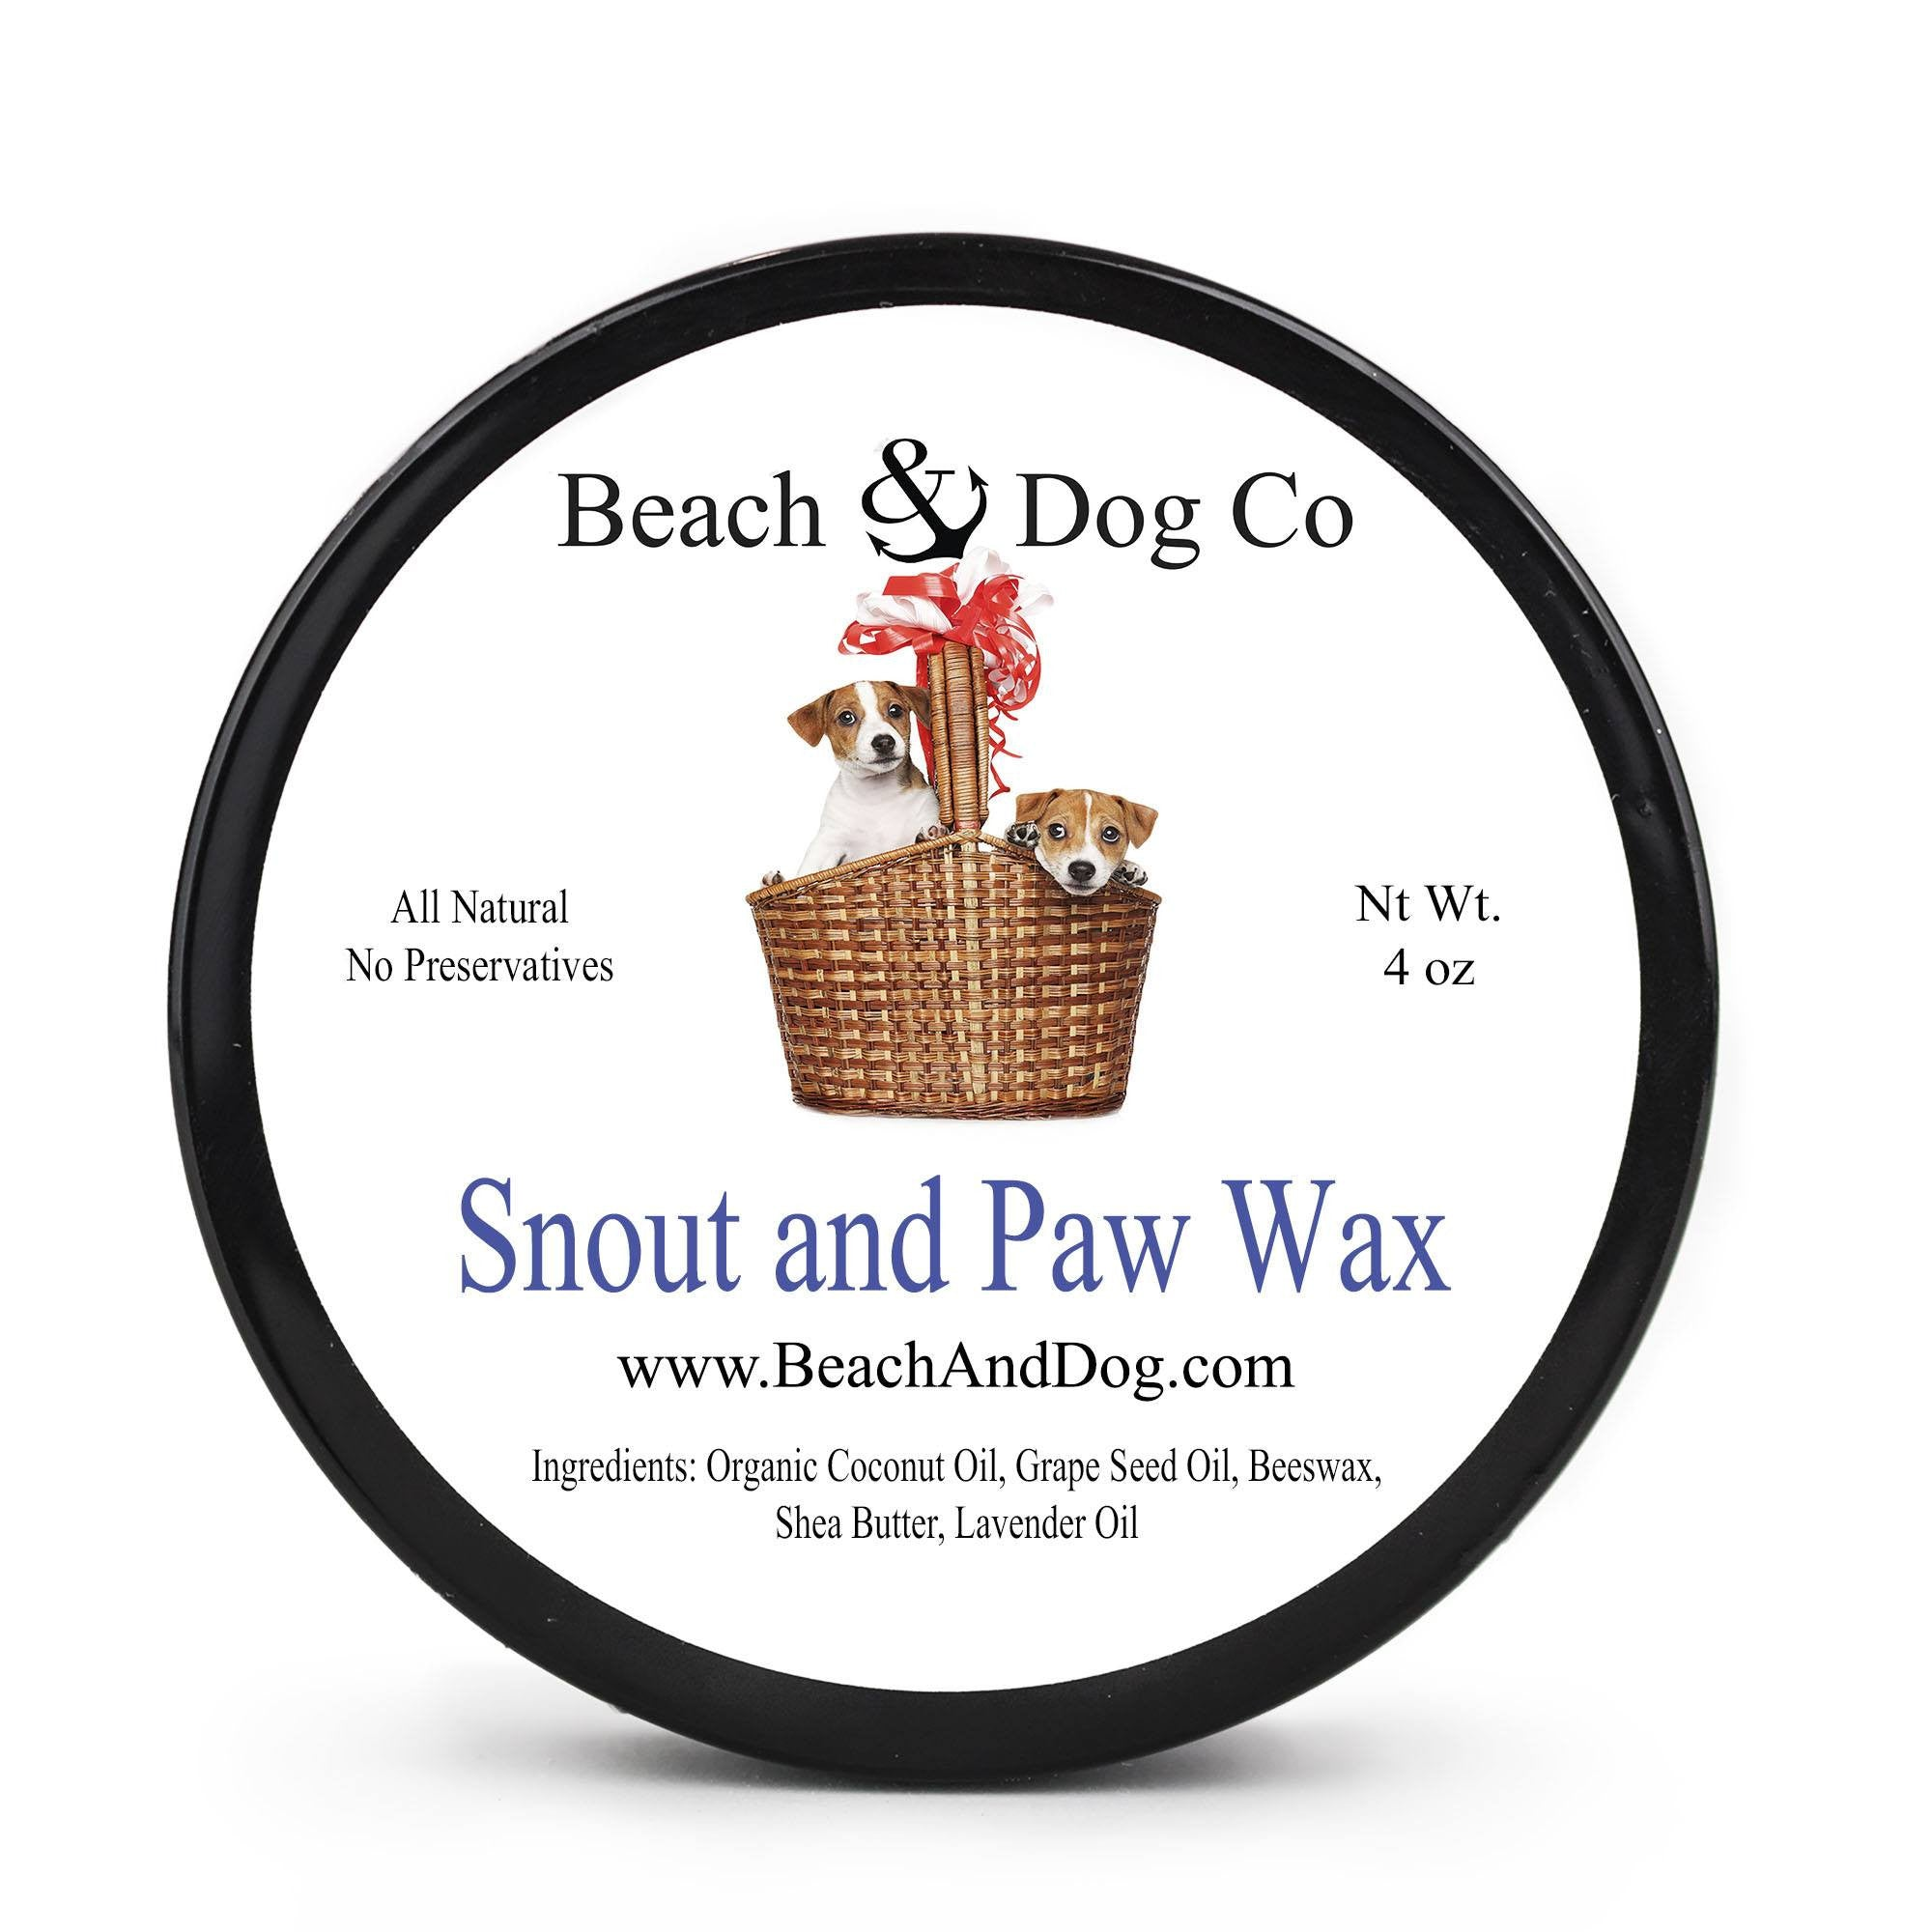 Snout and Paw Wax (4 oz) For Dry Chapped Cracked Noses and Paws - Beach & Dog Co.